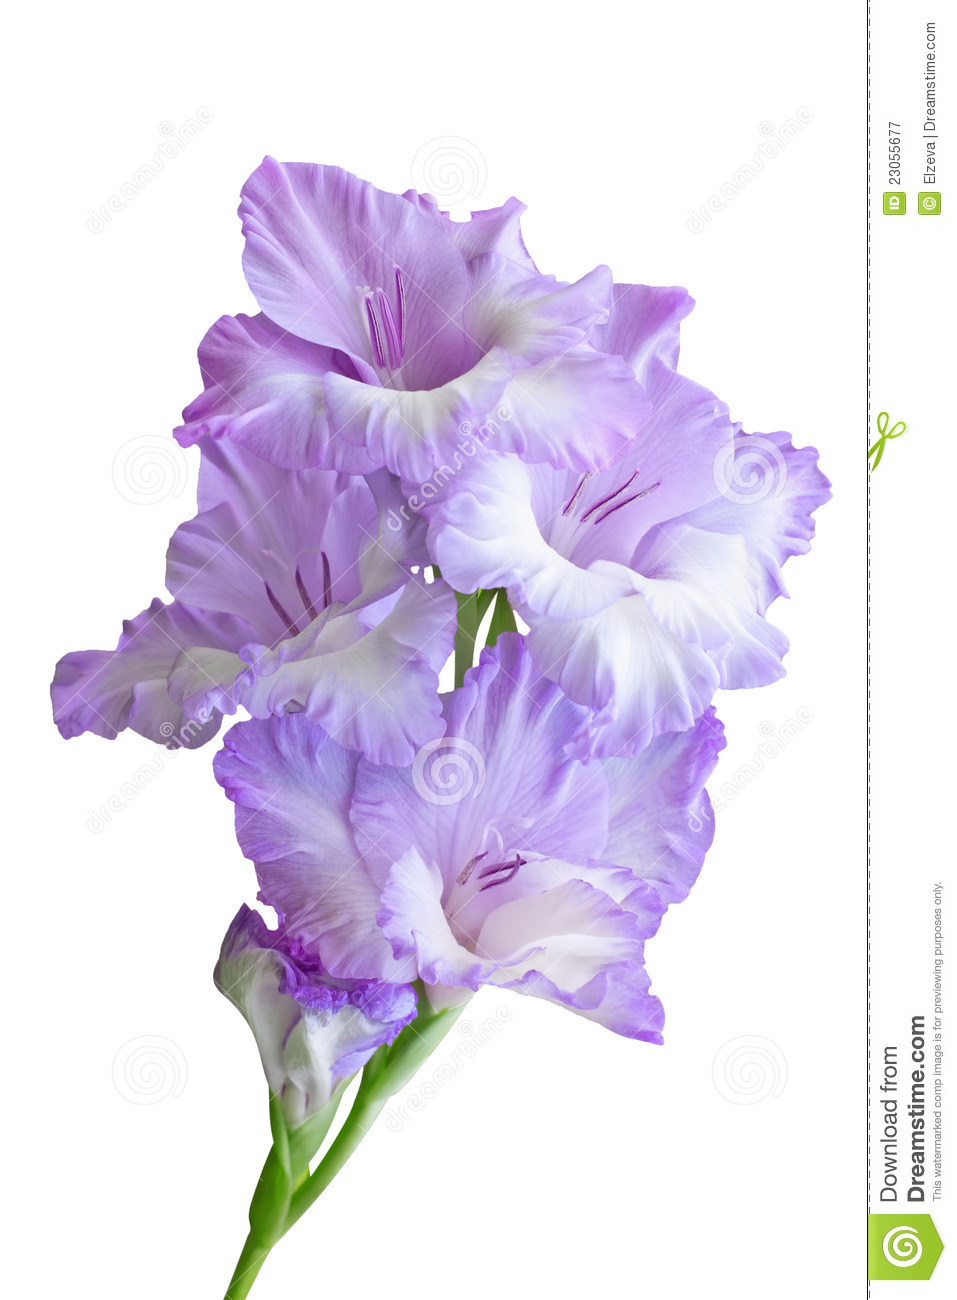 Gladiolus Branch Royalty Free Stock Photography - Image: 23055677